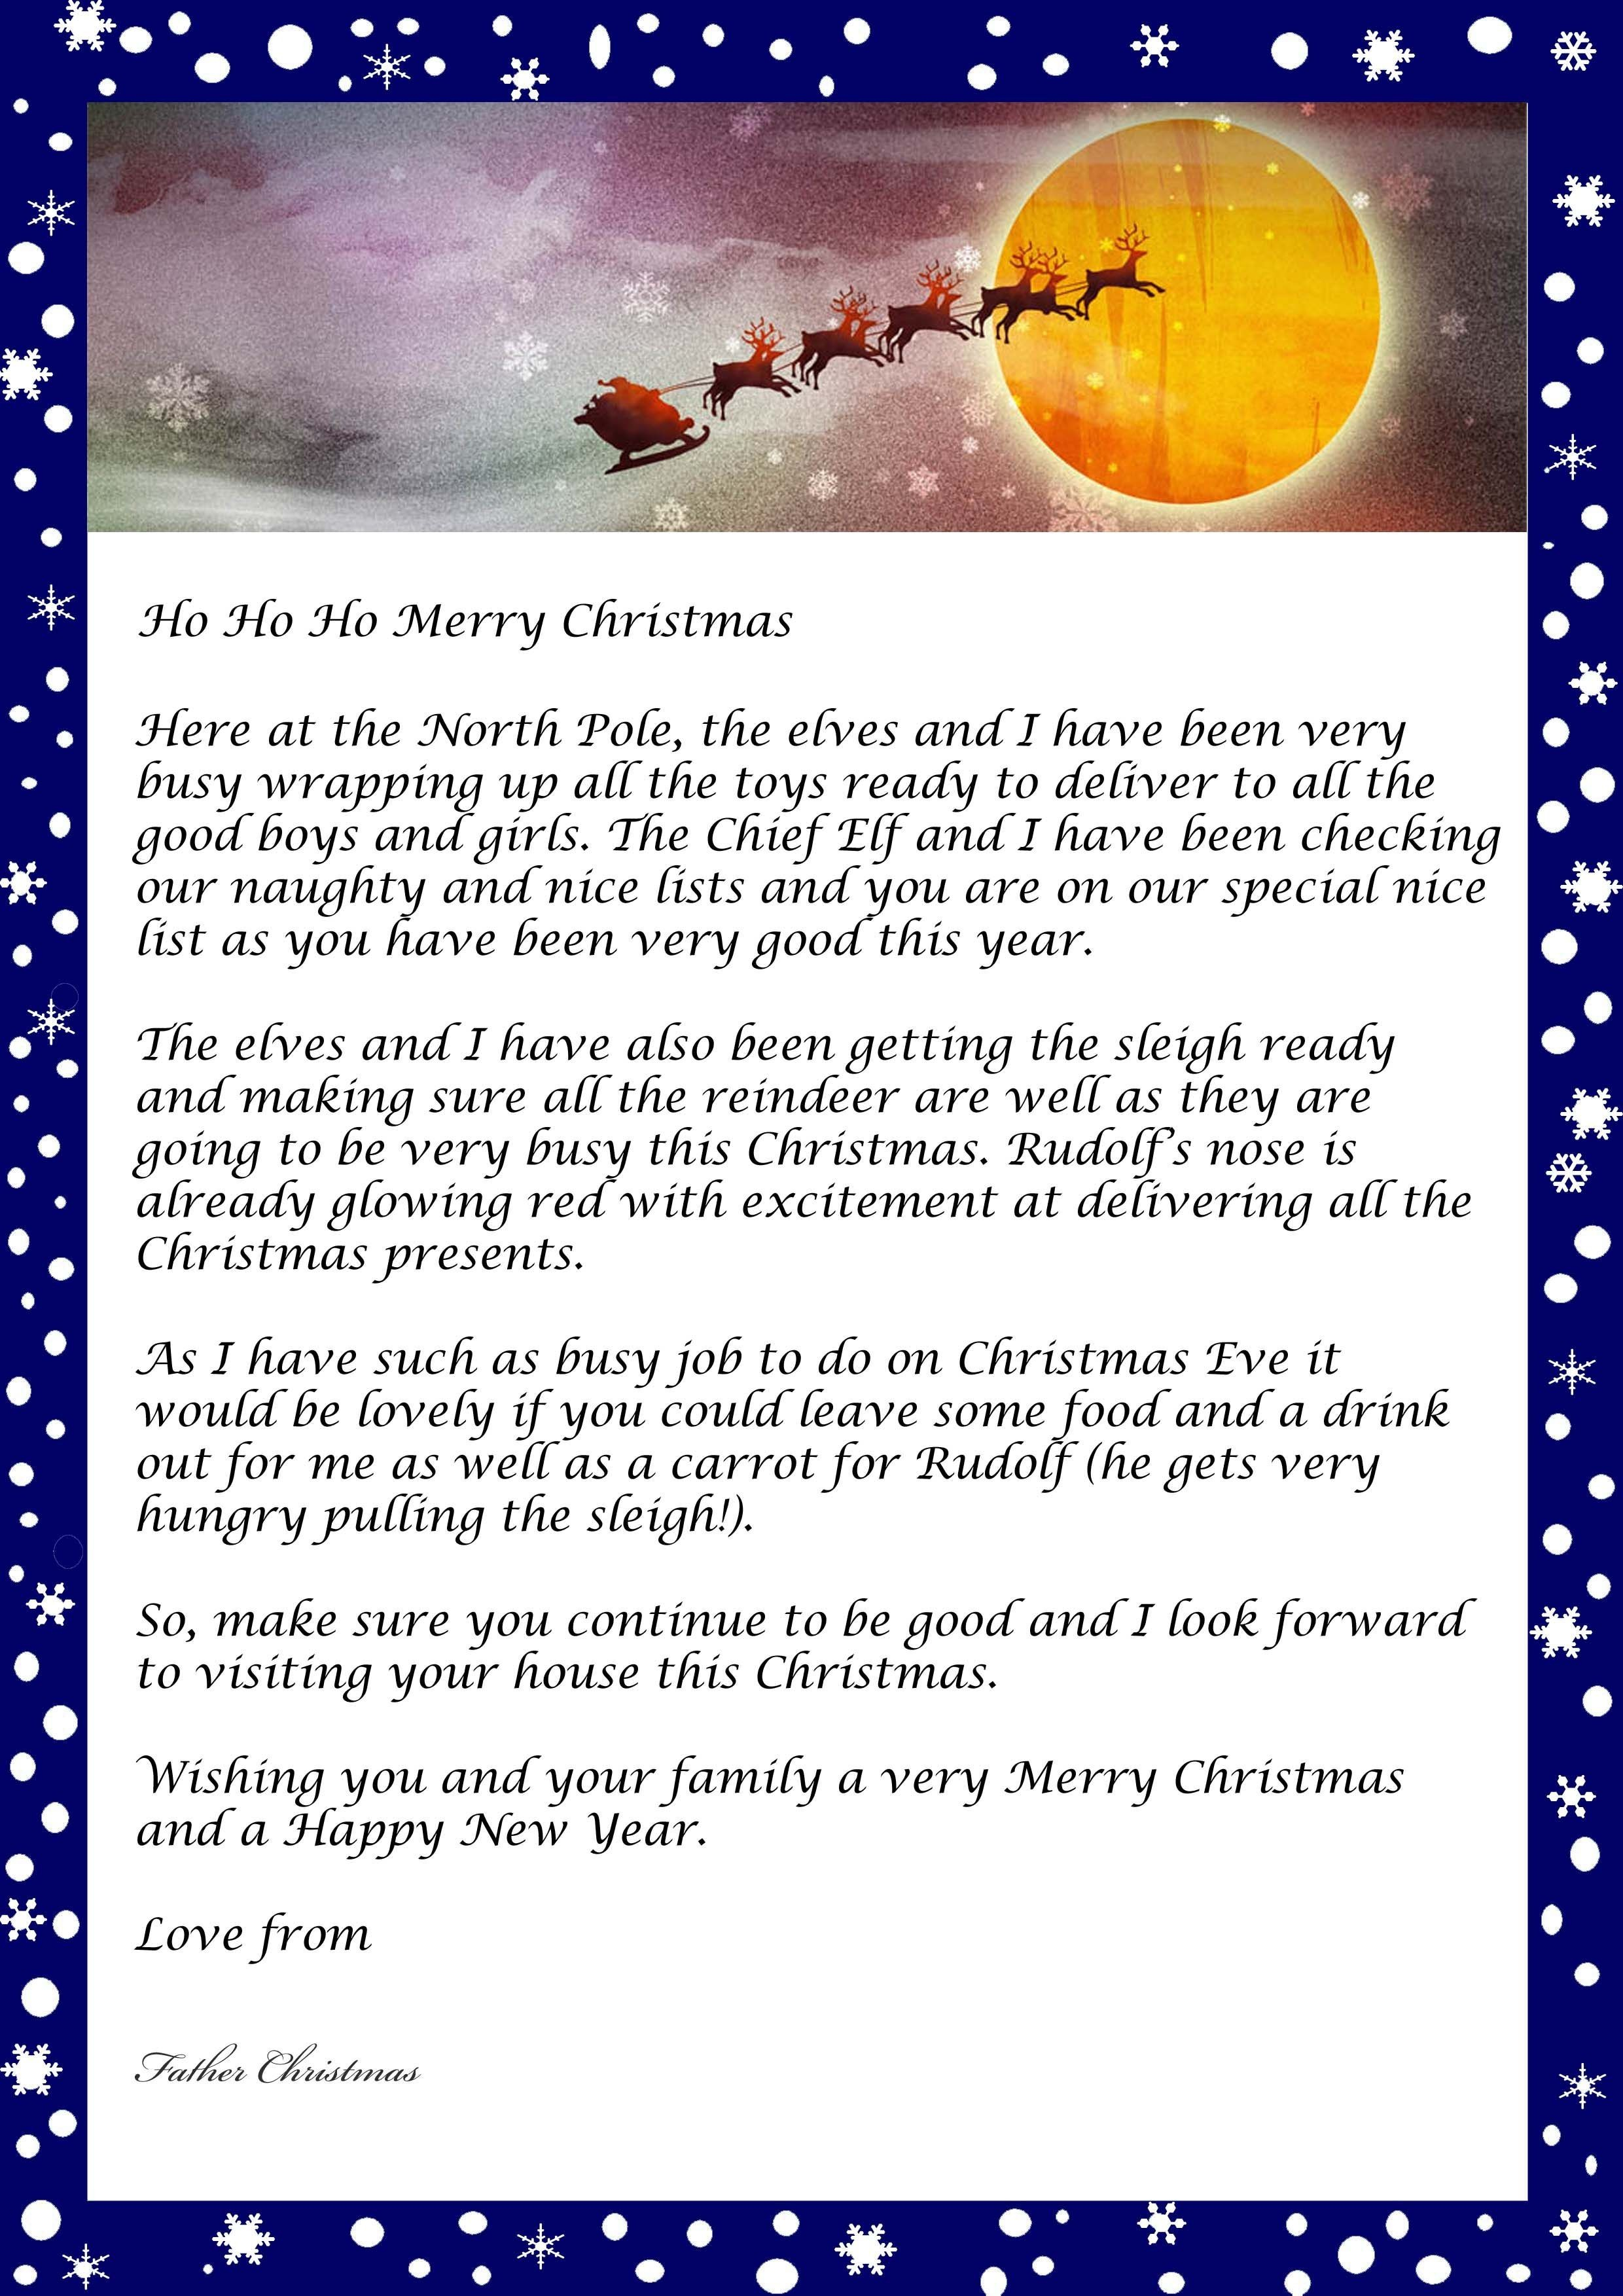 Letters From Father Christmas Free Letter Santa New Personalized - Free Personalized Printable Letters From Santa Claus